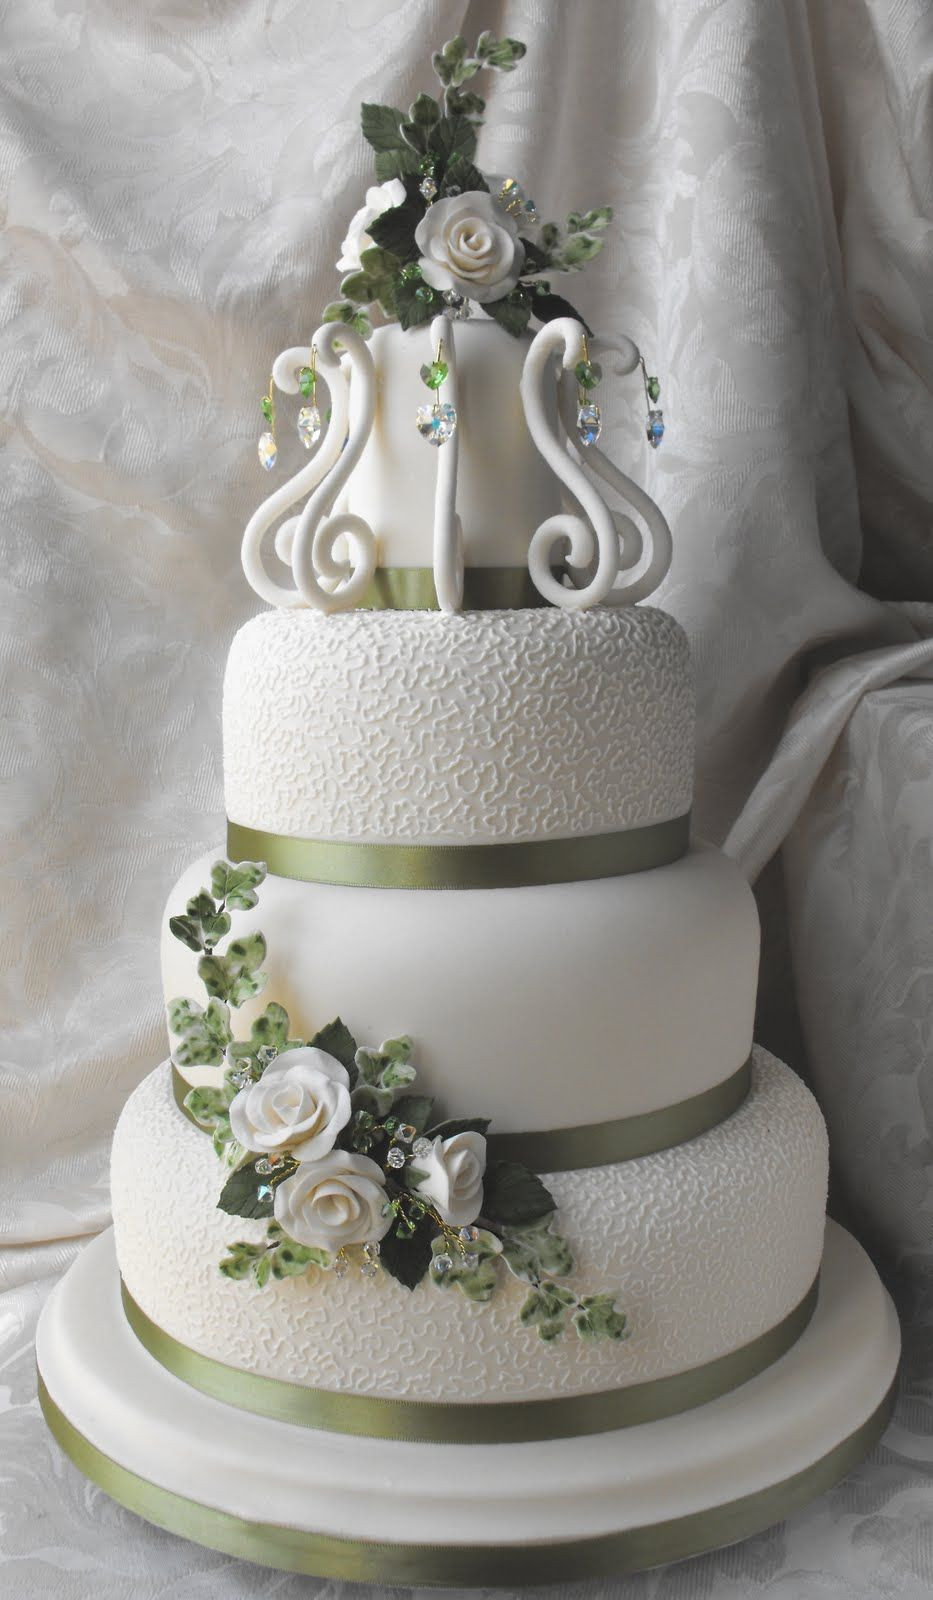 Expensive Wedding Cakes  This is one of the most expensive wedding cakes in the